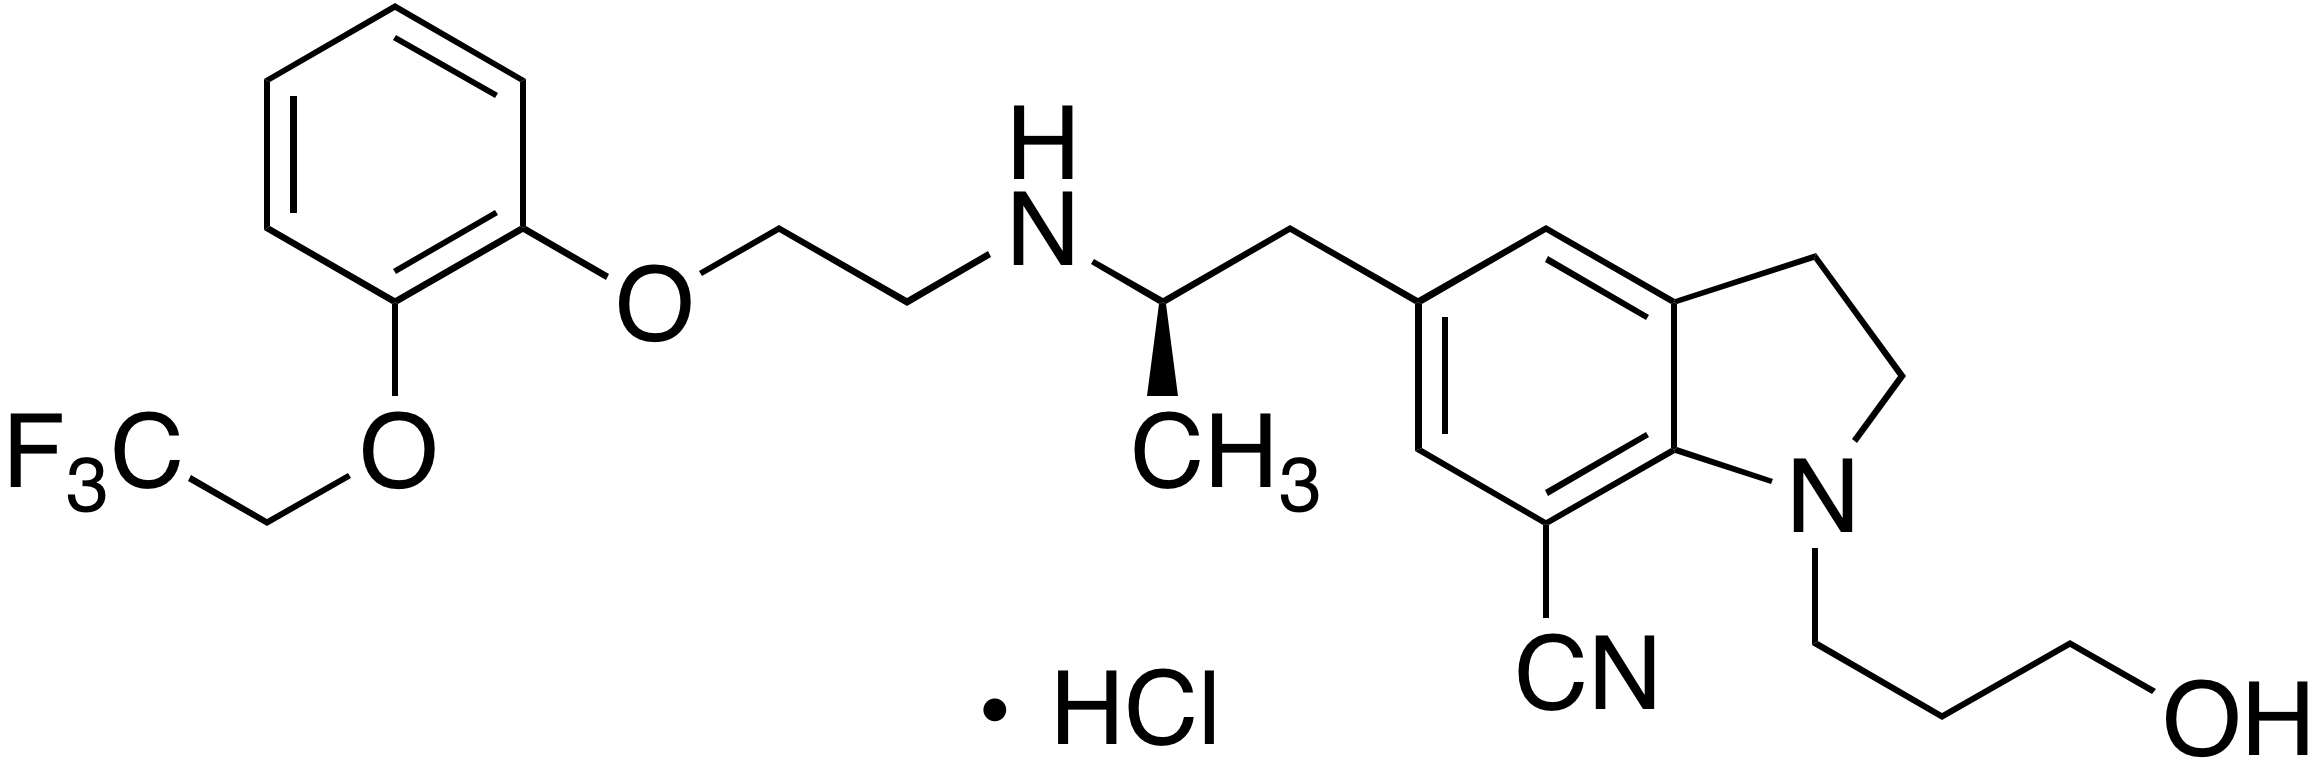 Silodosin impurity 2 (Nitrile impurity)